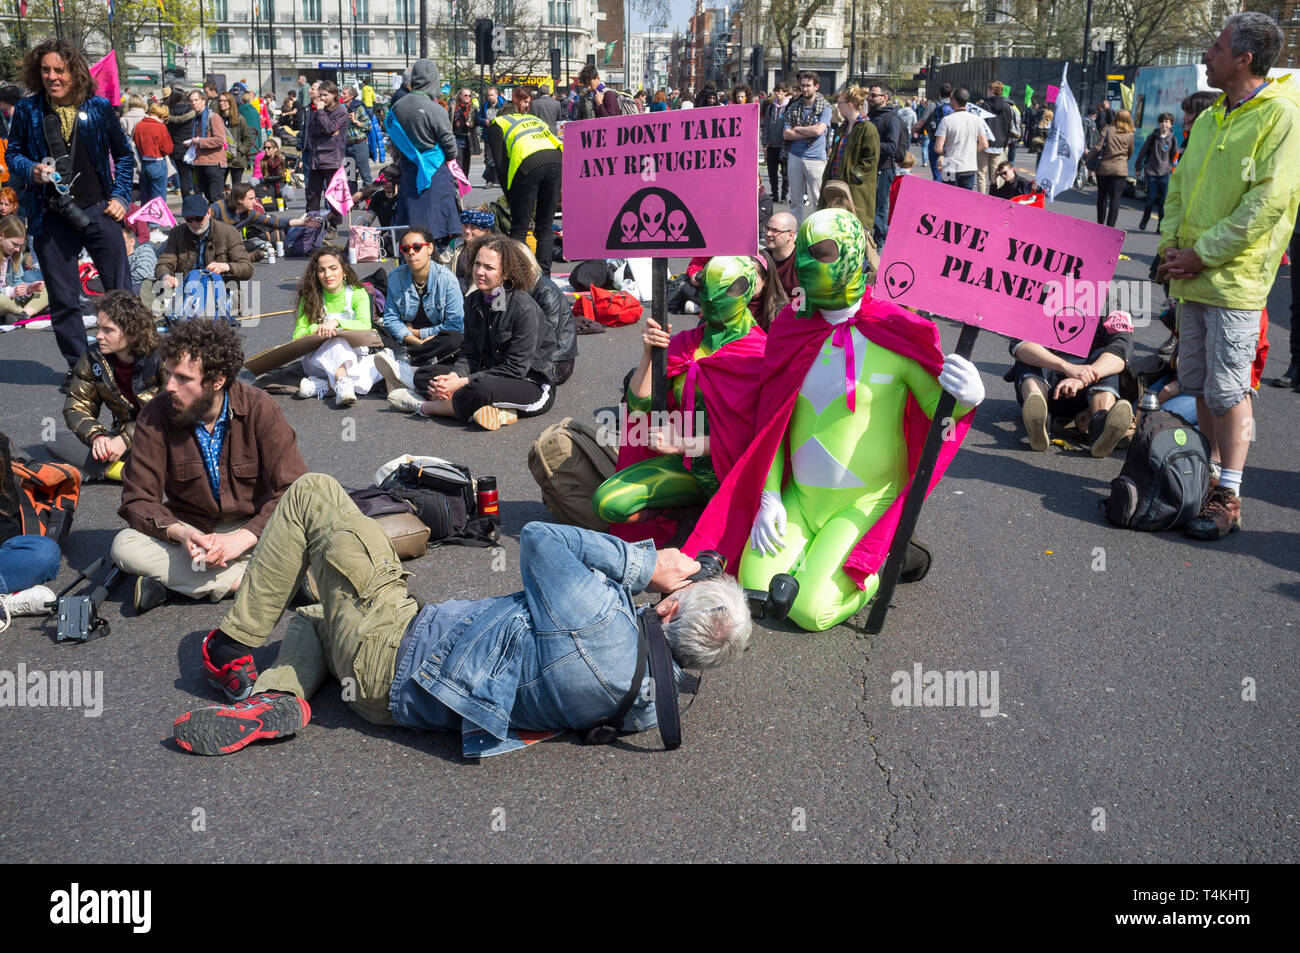 Two demostratos dressed as aliens are photographed at the Extinction Rebellion demonstration in Marble Arch - Stock Image